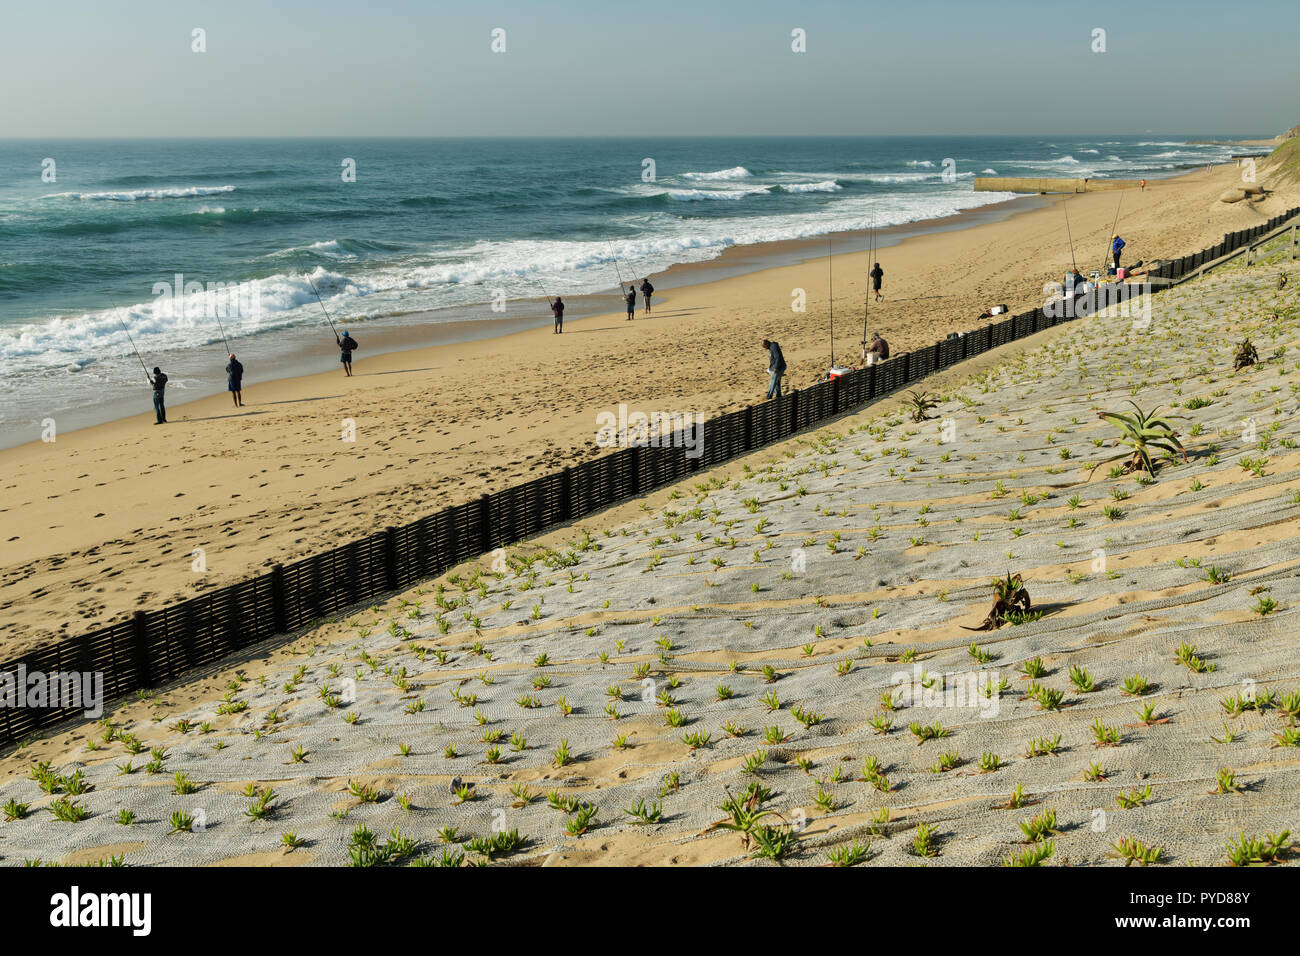 Durban, KwaZulu-Natal, South Africa, fence protecting new plants of dune rehabilitation project, ongoing beach management to counter global warming Stock Photo